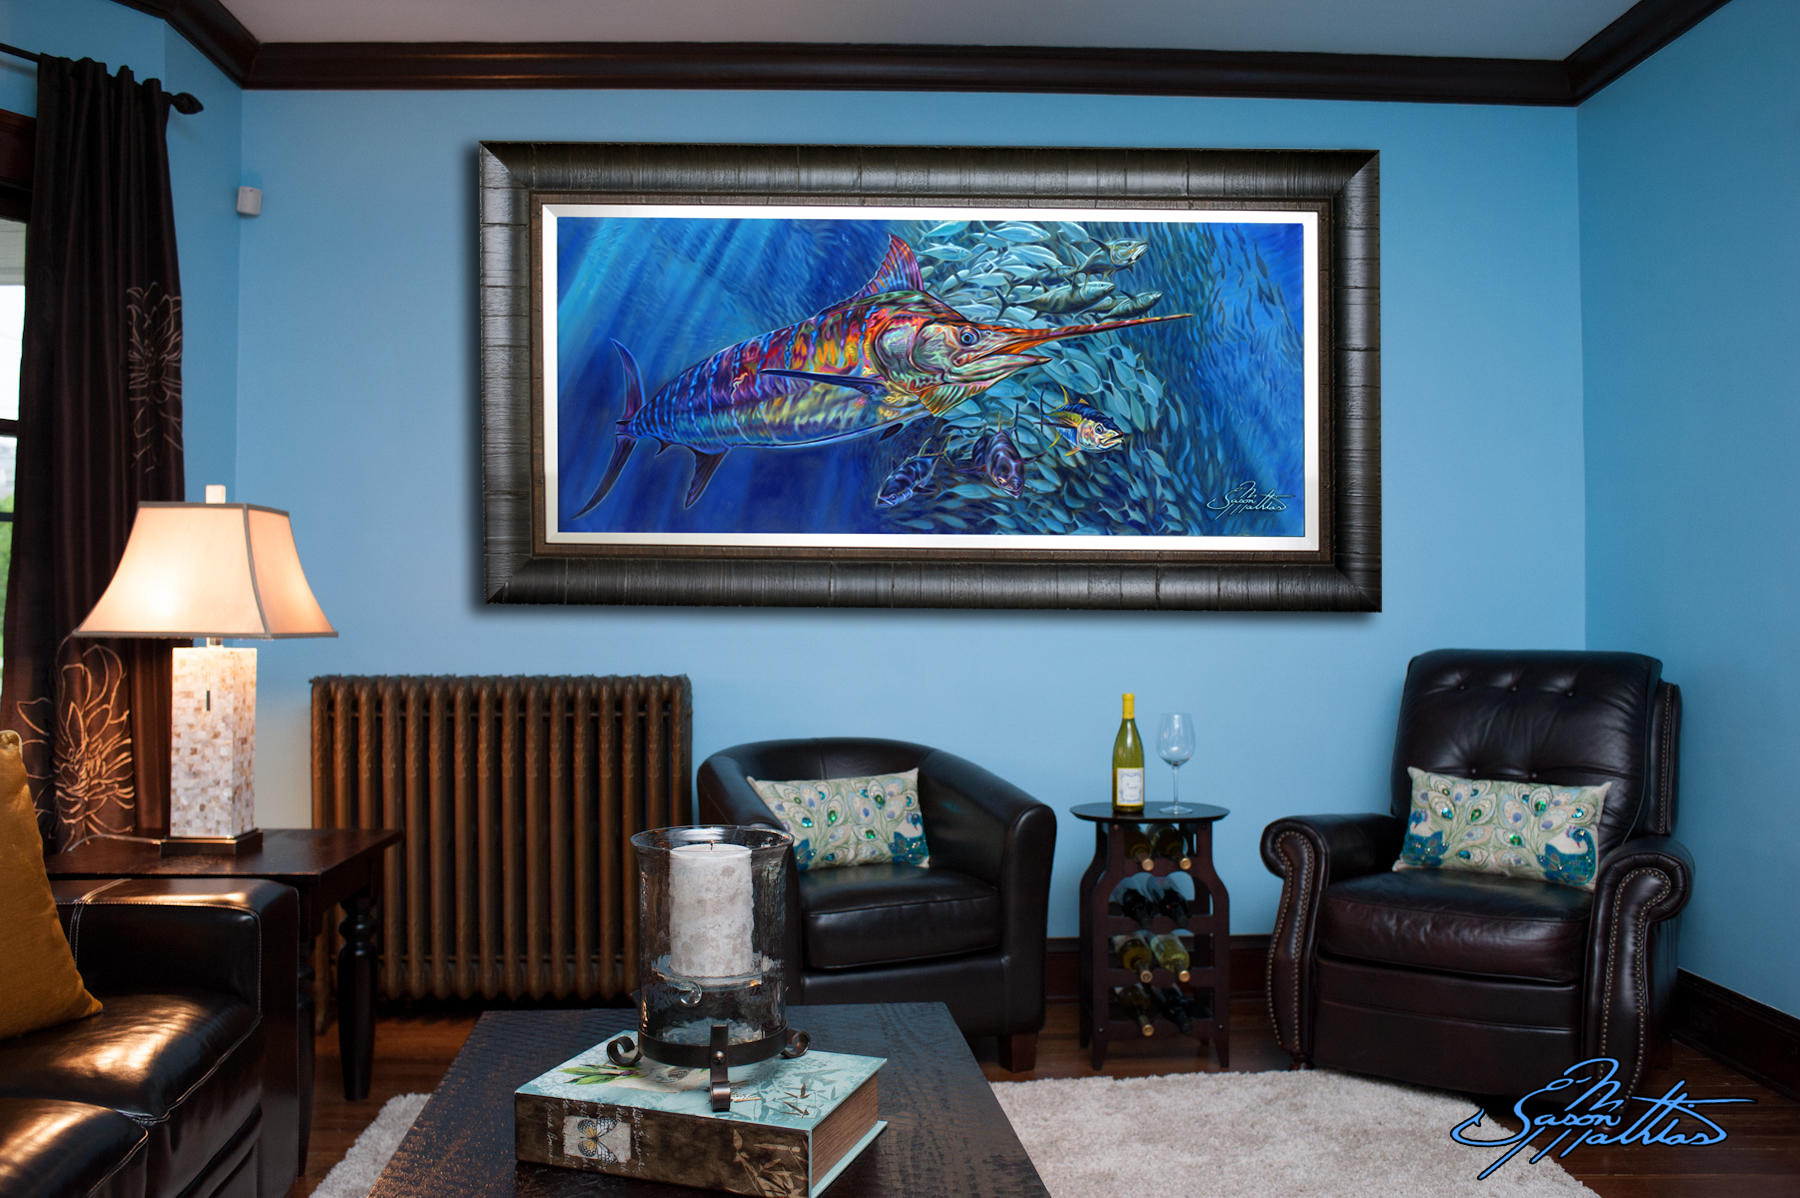 blue-marlin-fine-art-interior-decor.jpg